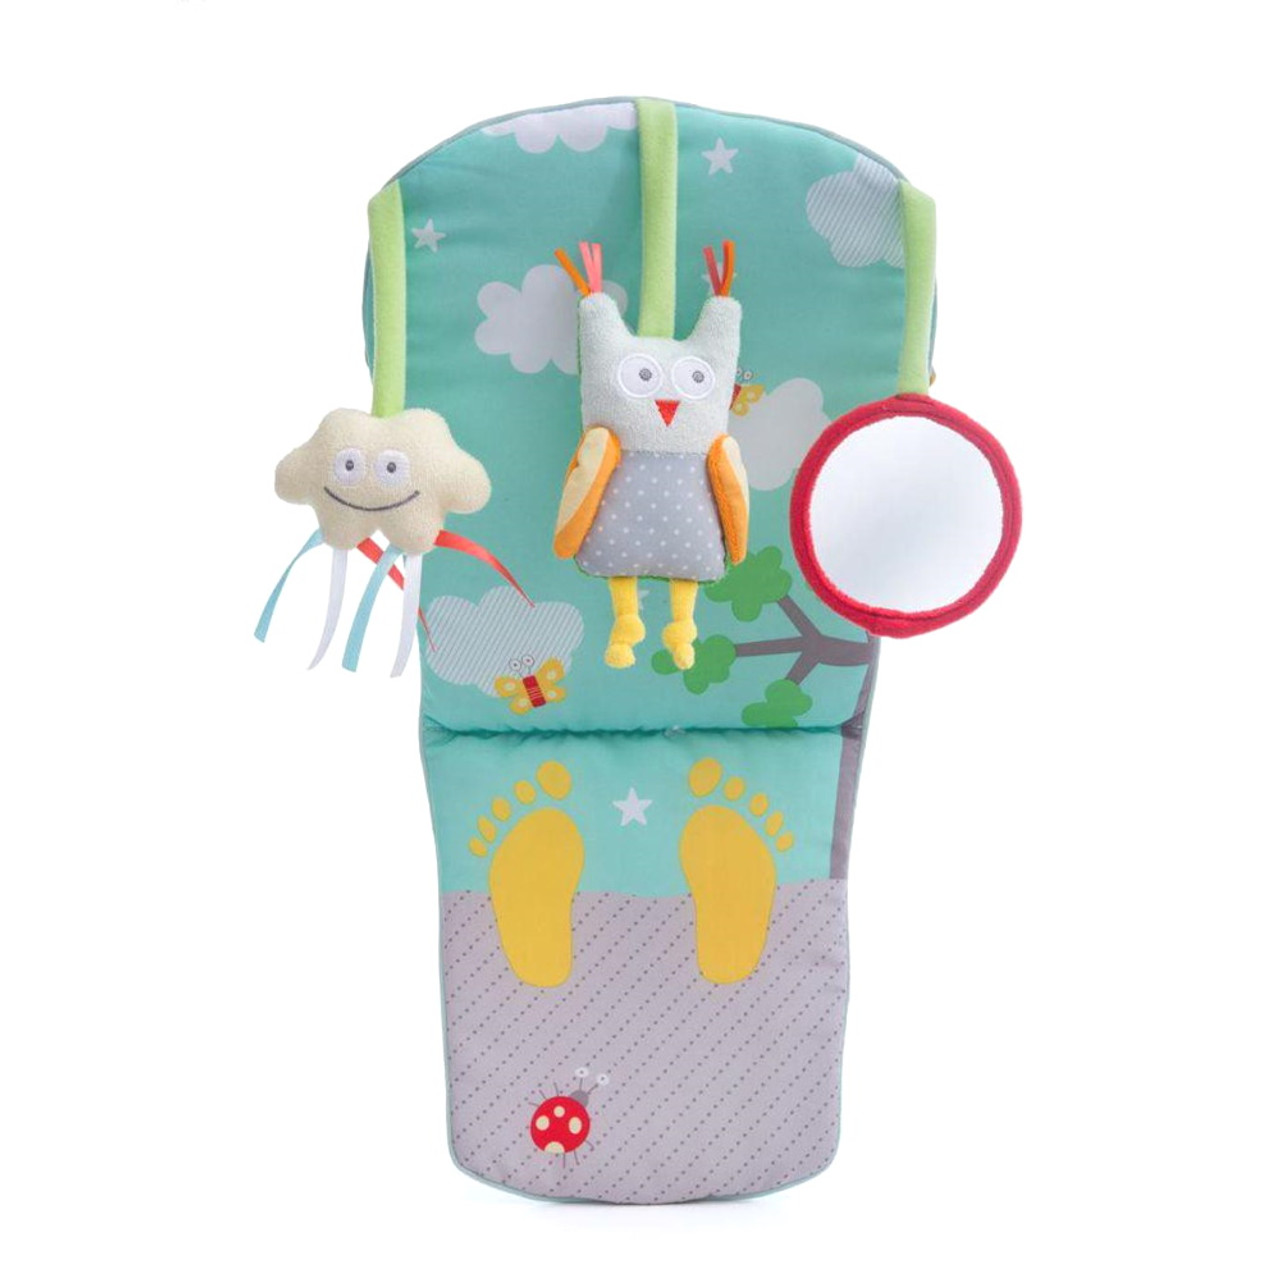 TAF Toys Play & Kick Car Toy provides entertainment for baby when travelling in a rear-facing car seat, with music and light features to helps develop baby's senses and motor skills development.